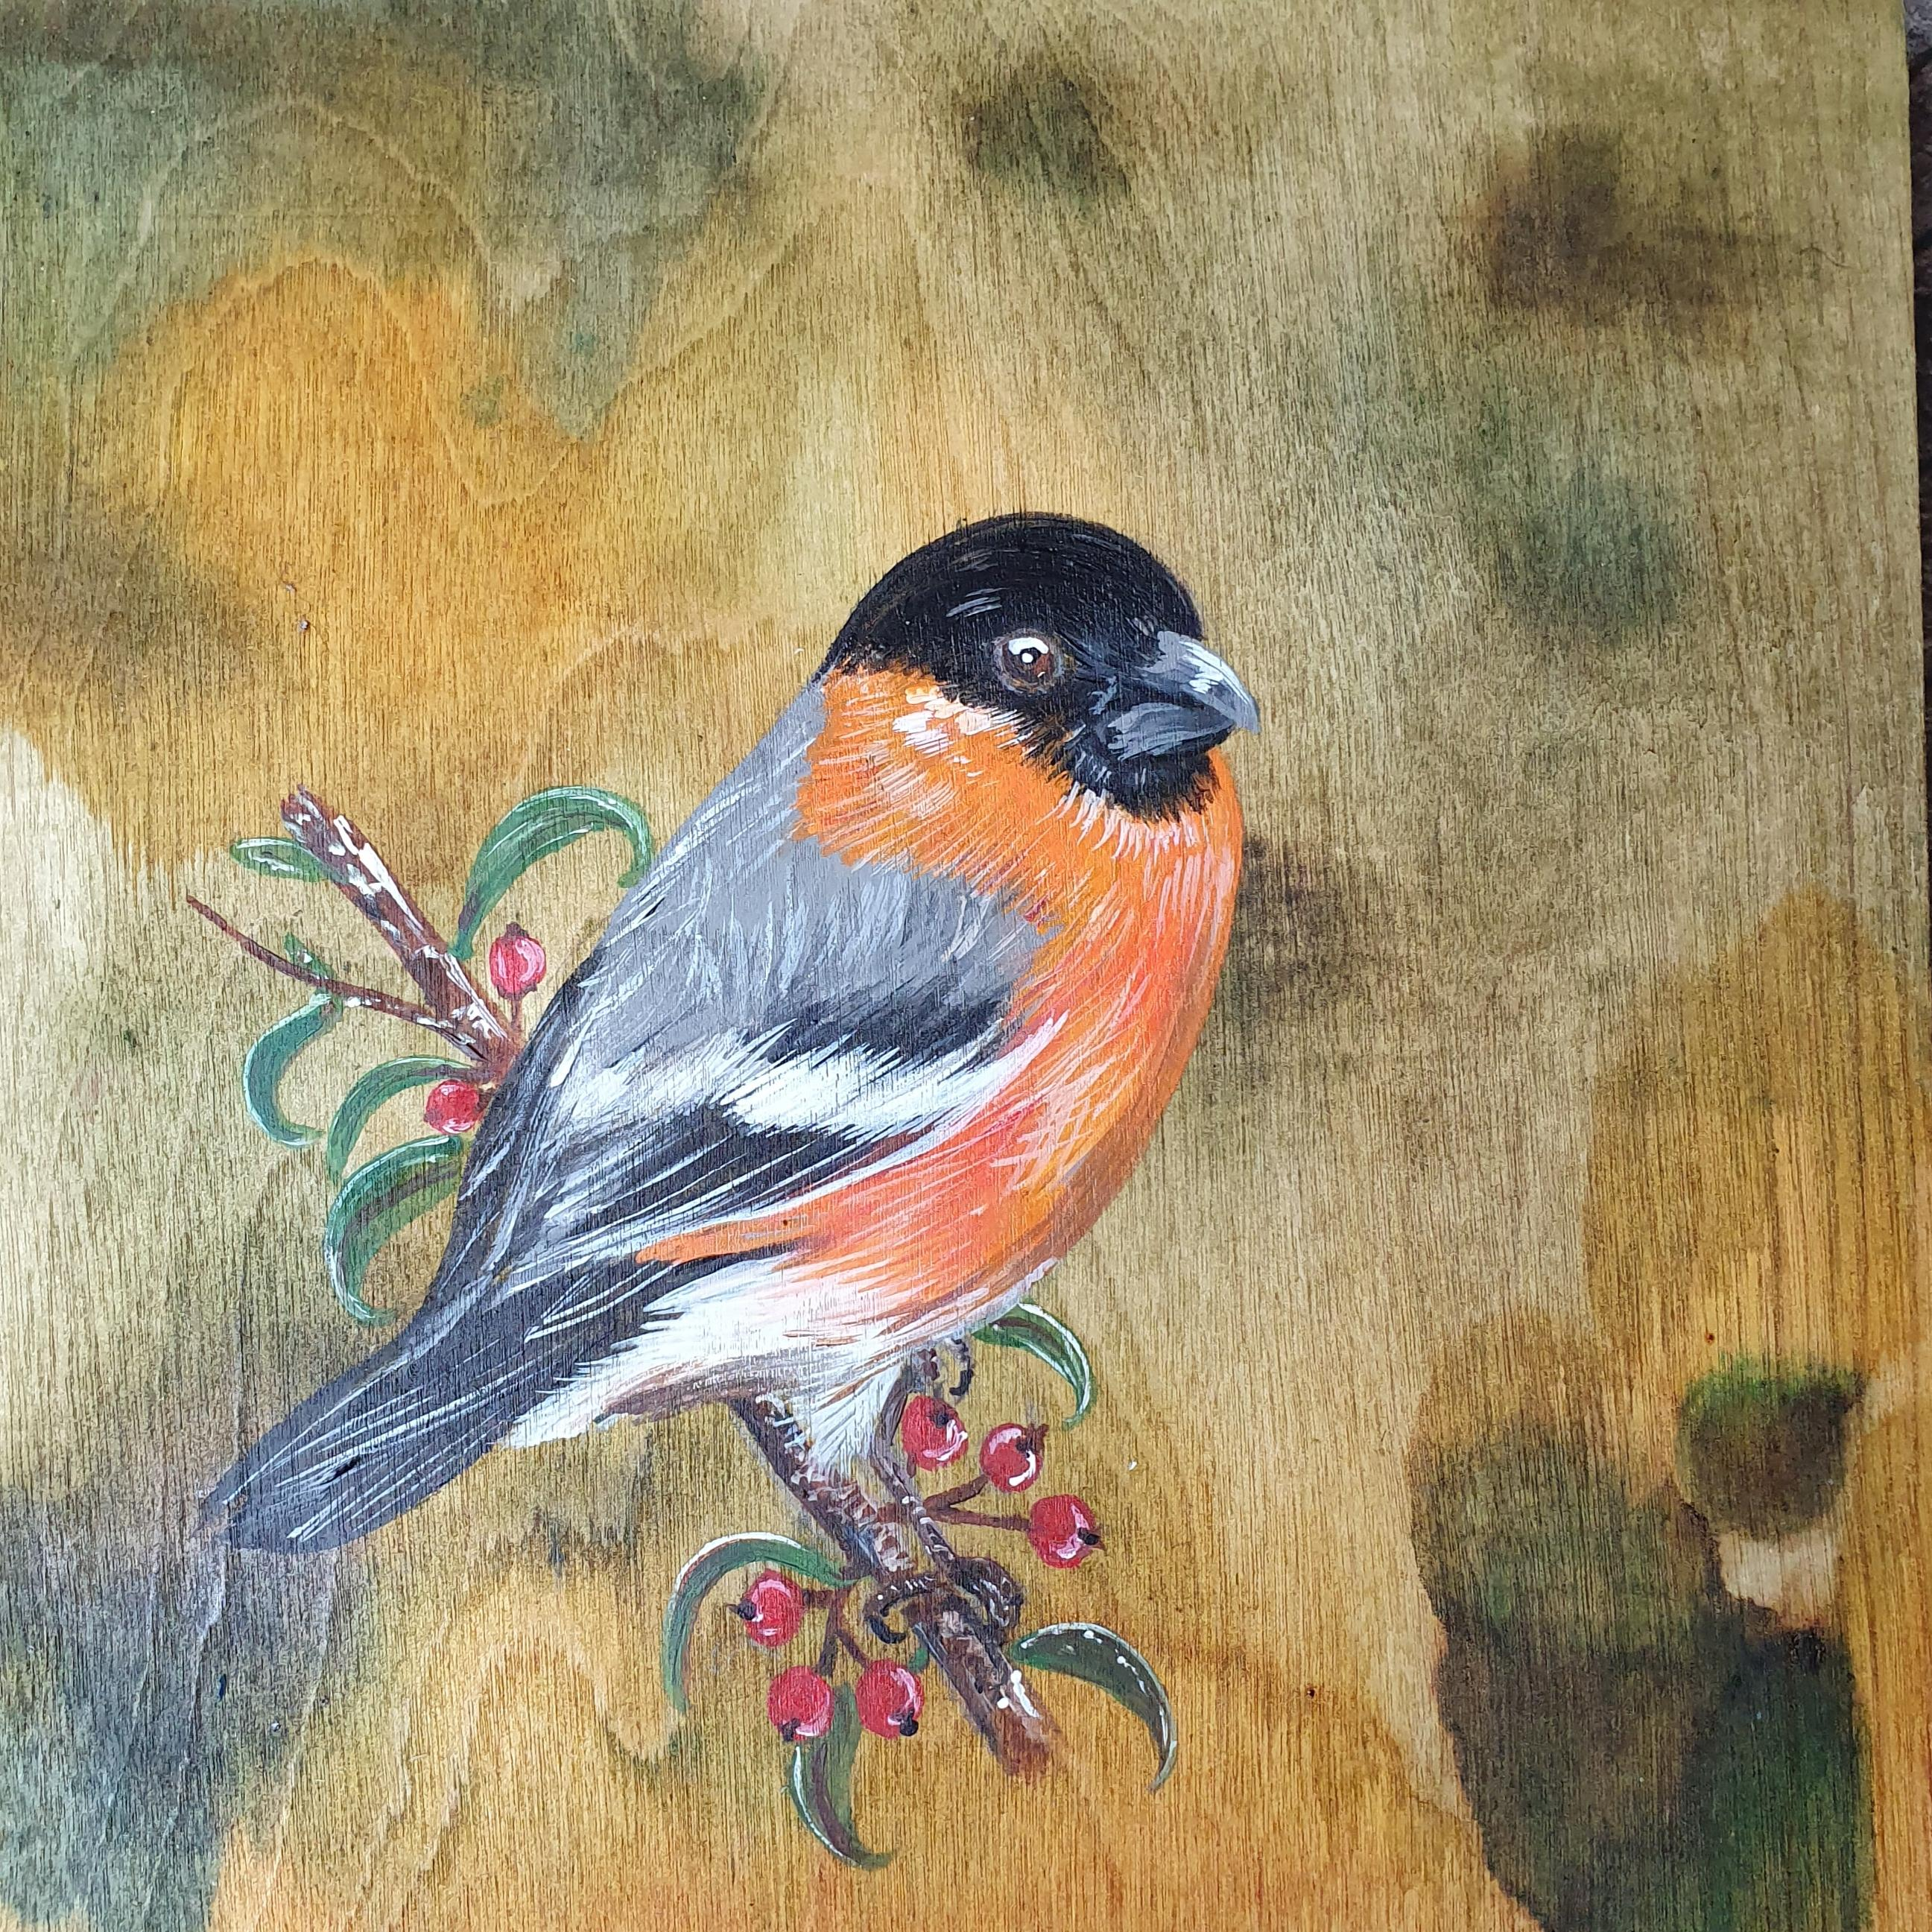 The Bullfinch Song.